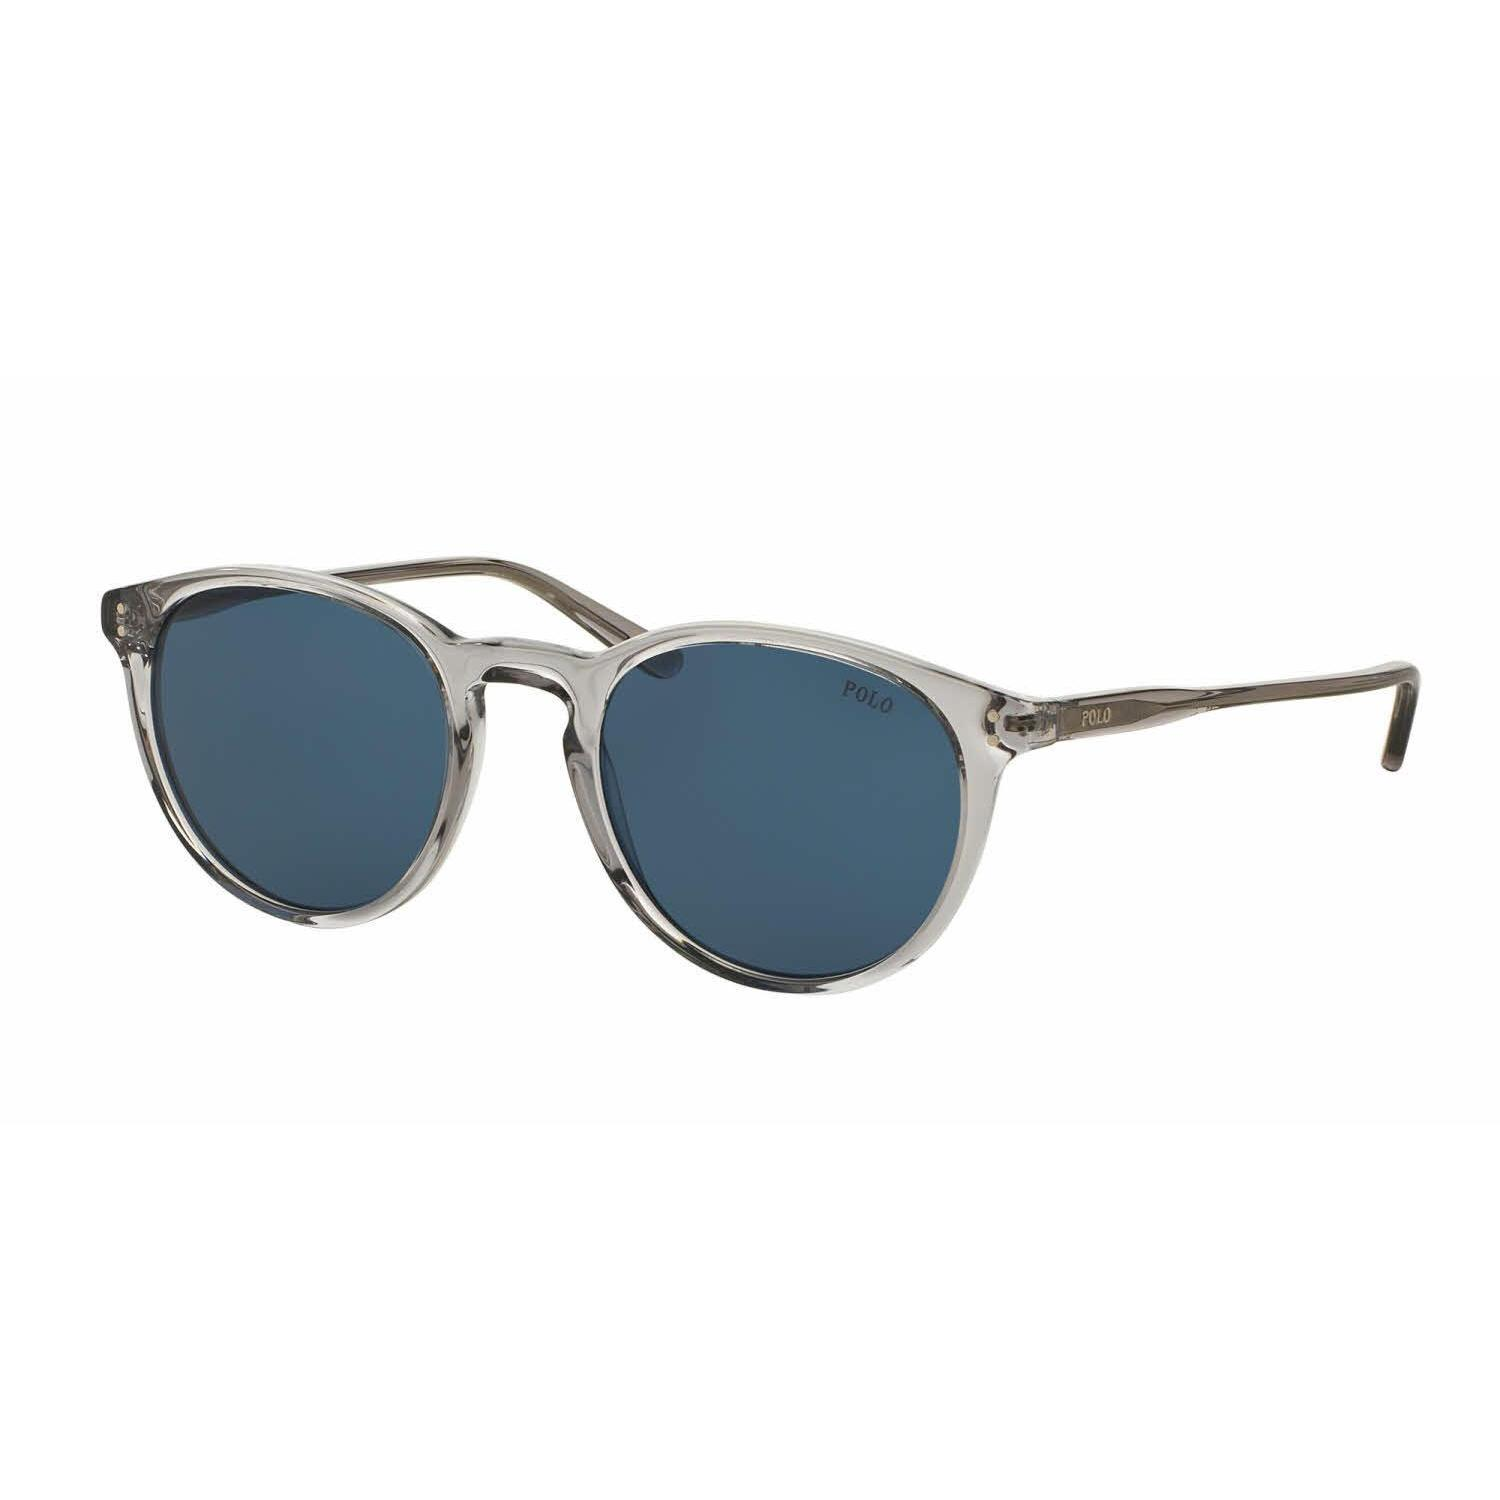 01d88ac6392 Shop Polo Mens PH4110 541380 Grey Plastic Phantos Sunglasses - Blue - Free  Shipping Today - Overstock.com - 13471656